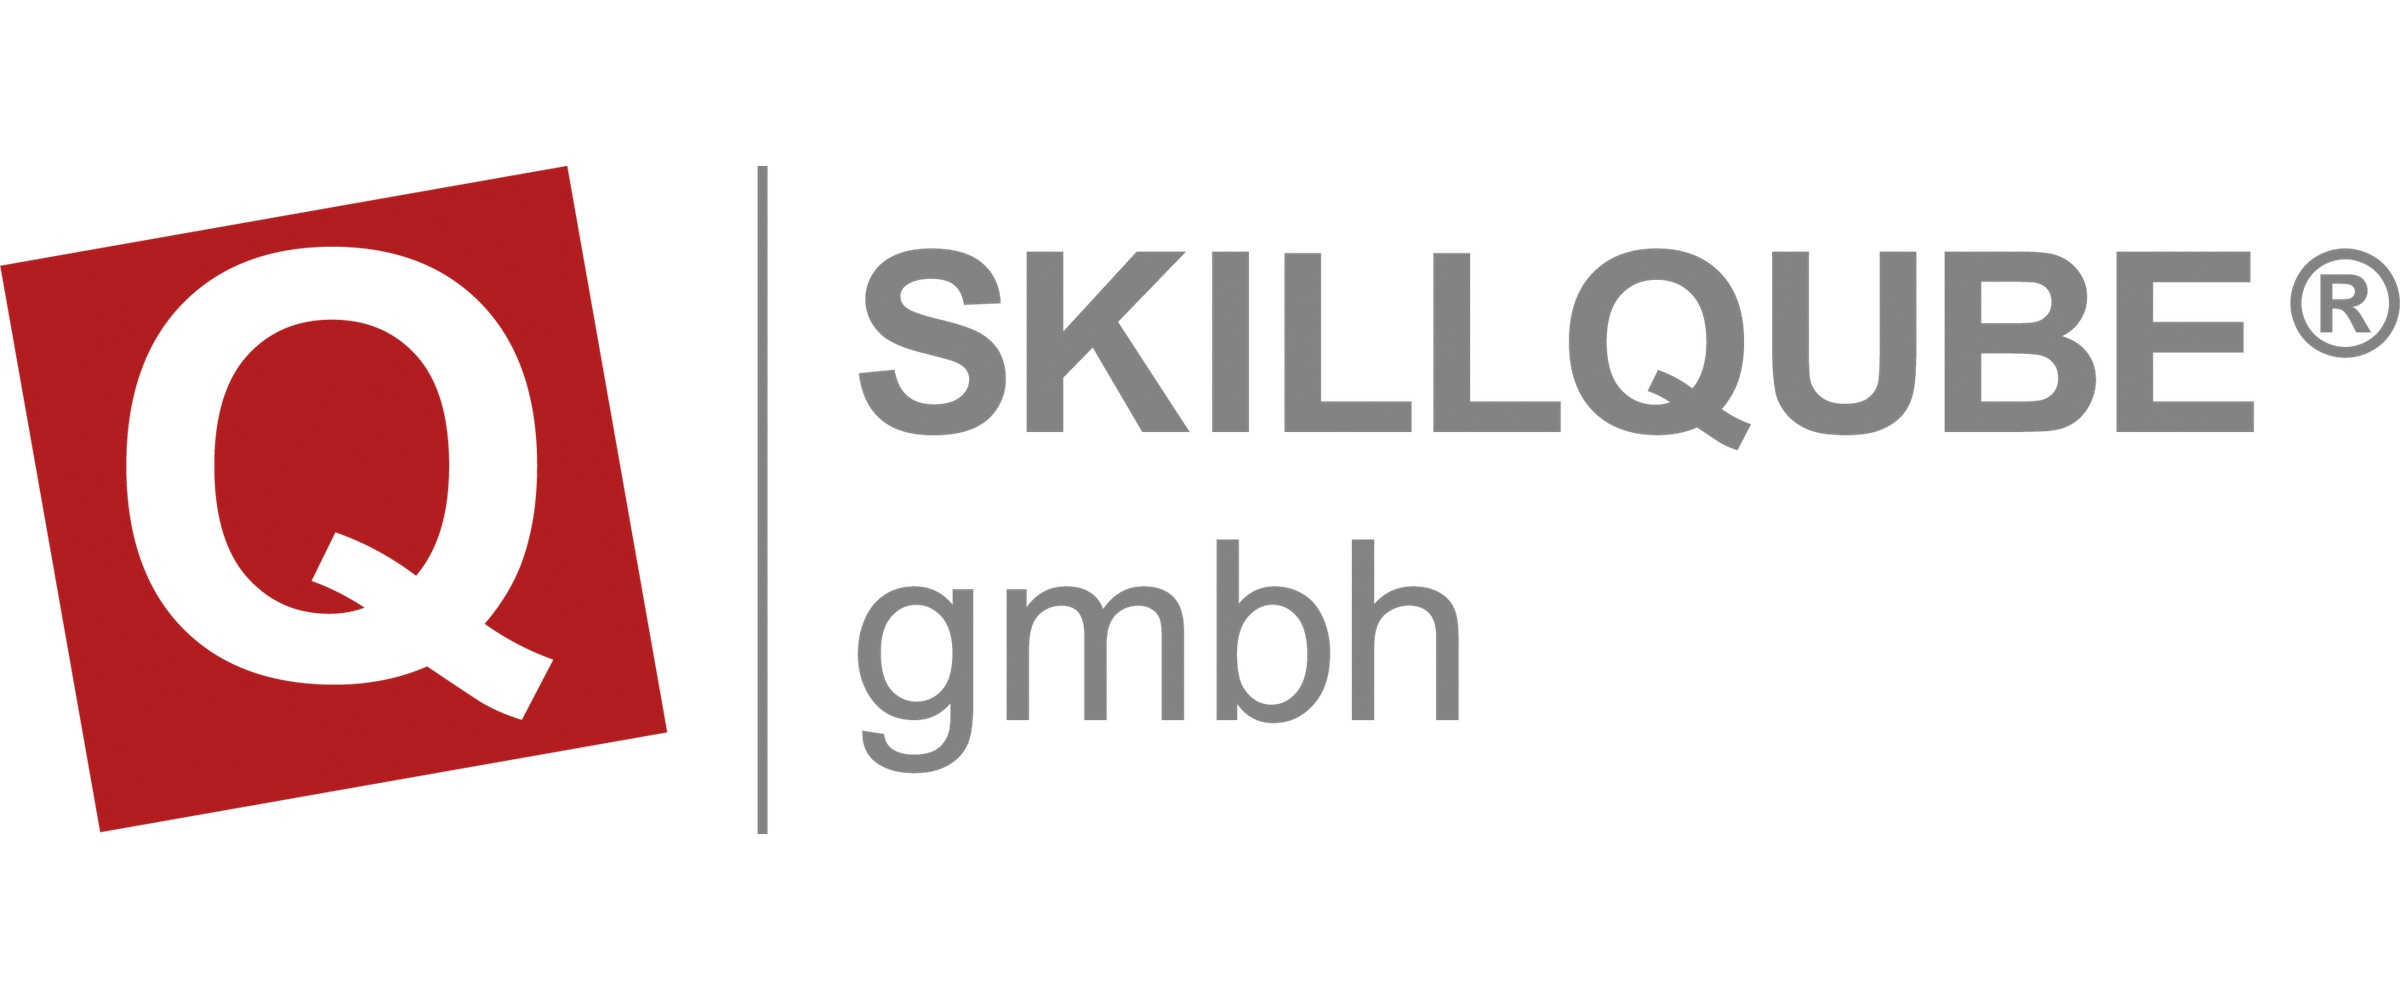 http://www.agn.at/kongress/wp-content/uploads/2017/08/skillqube.jpg